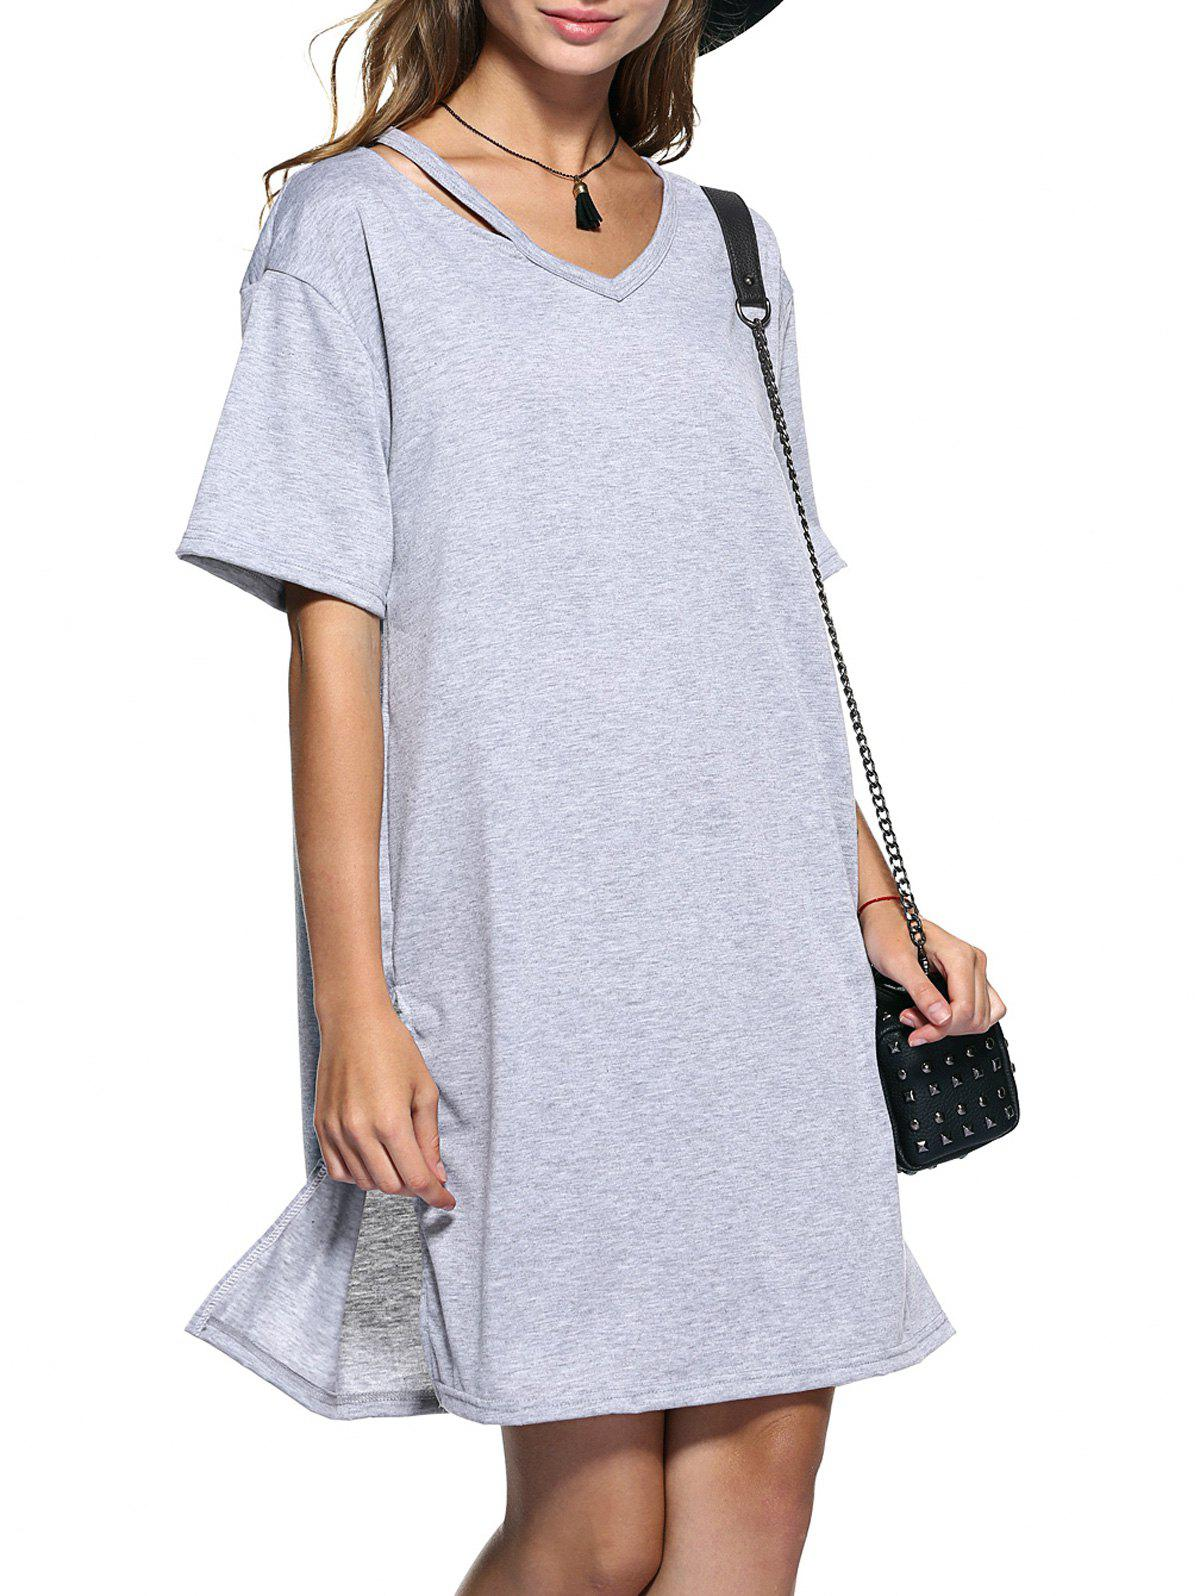 Cut Out Slit Pure Color Boyfriend Tee - GRAY L